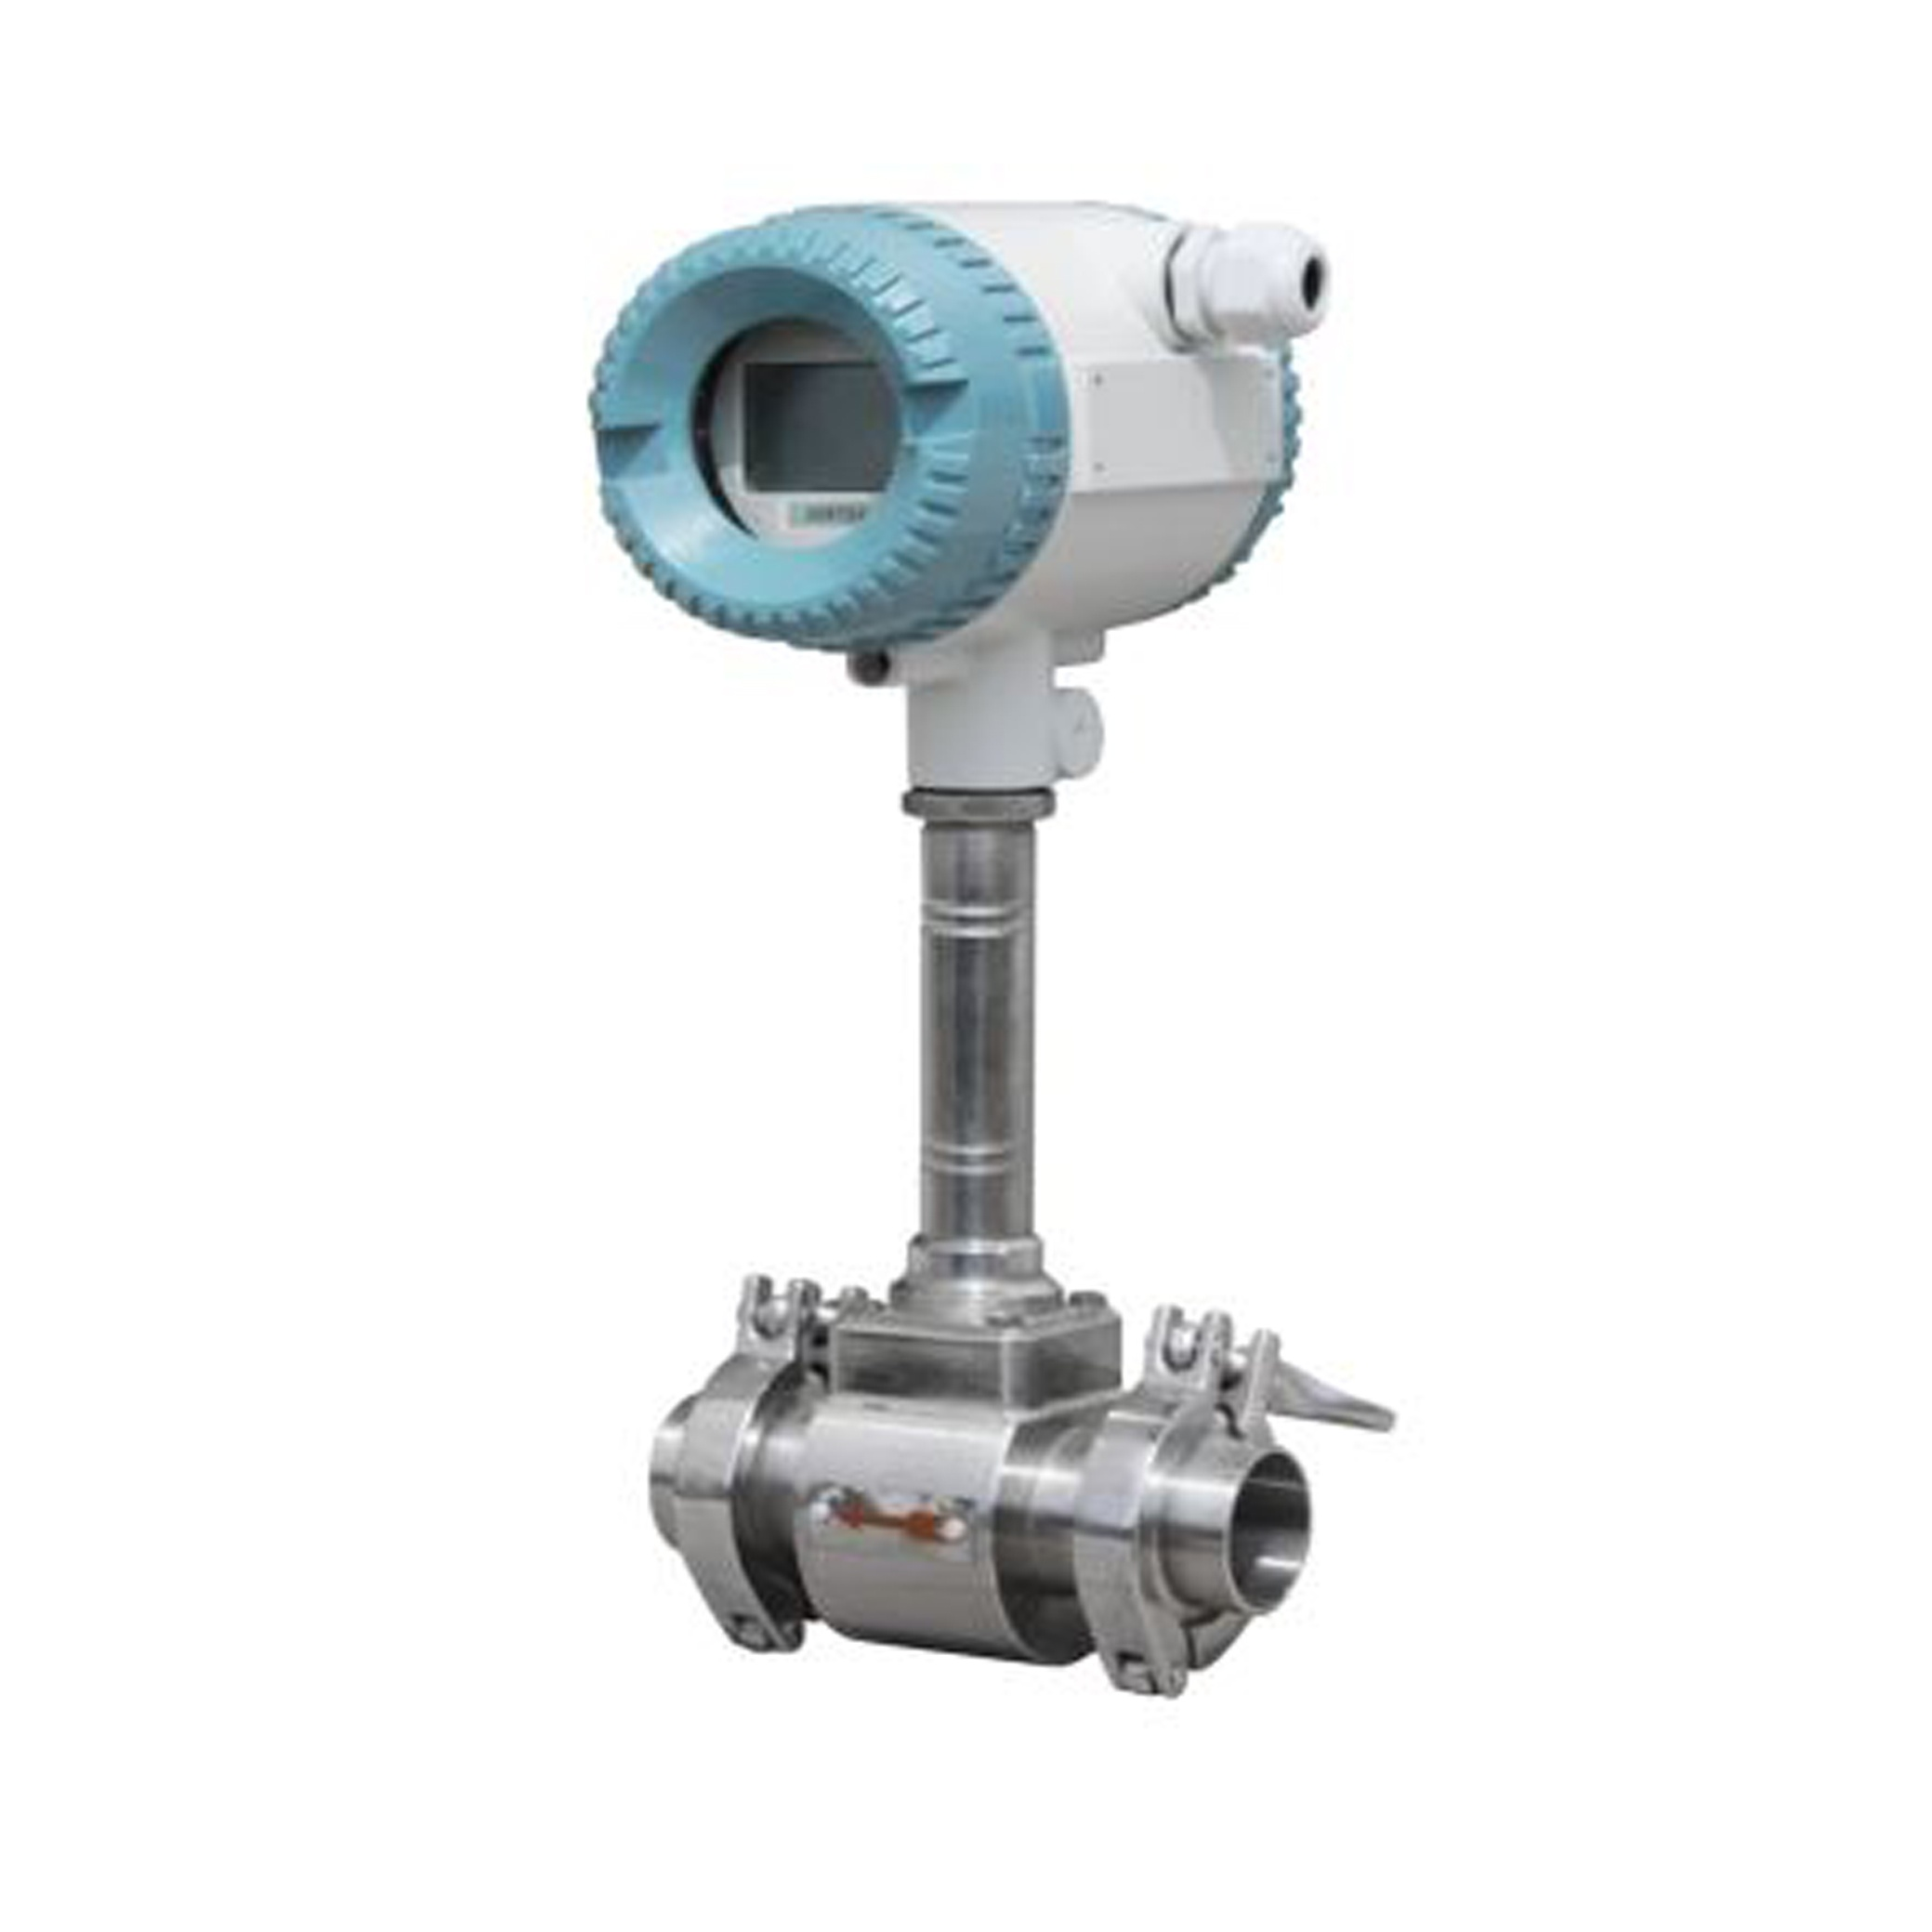 Sanitary ti-Clamp Vortex Flow Meter